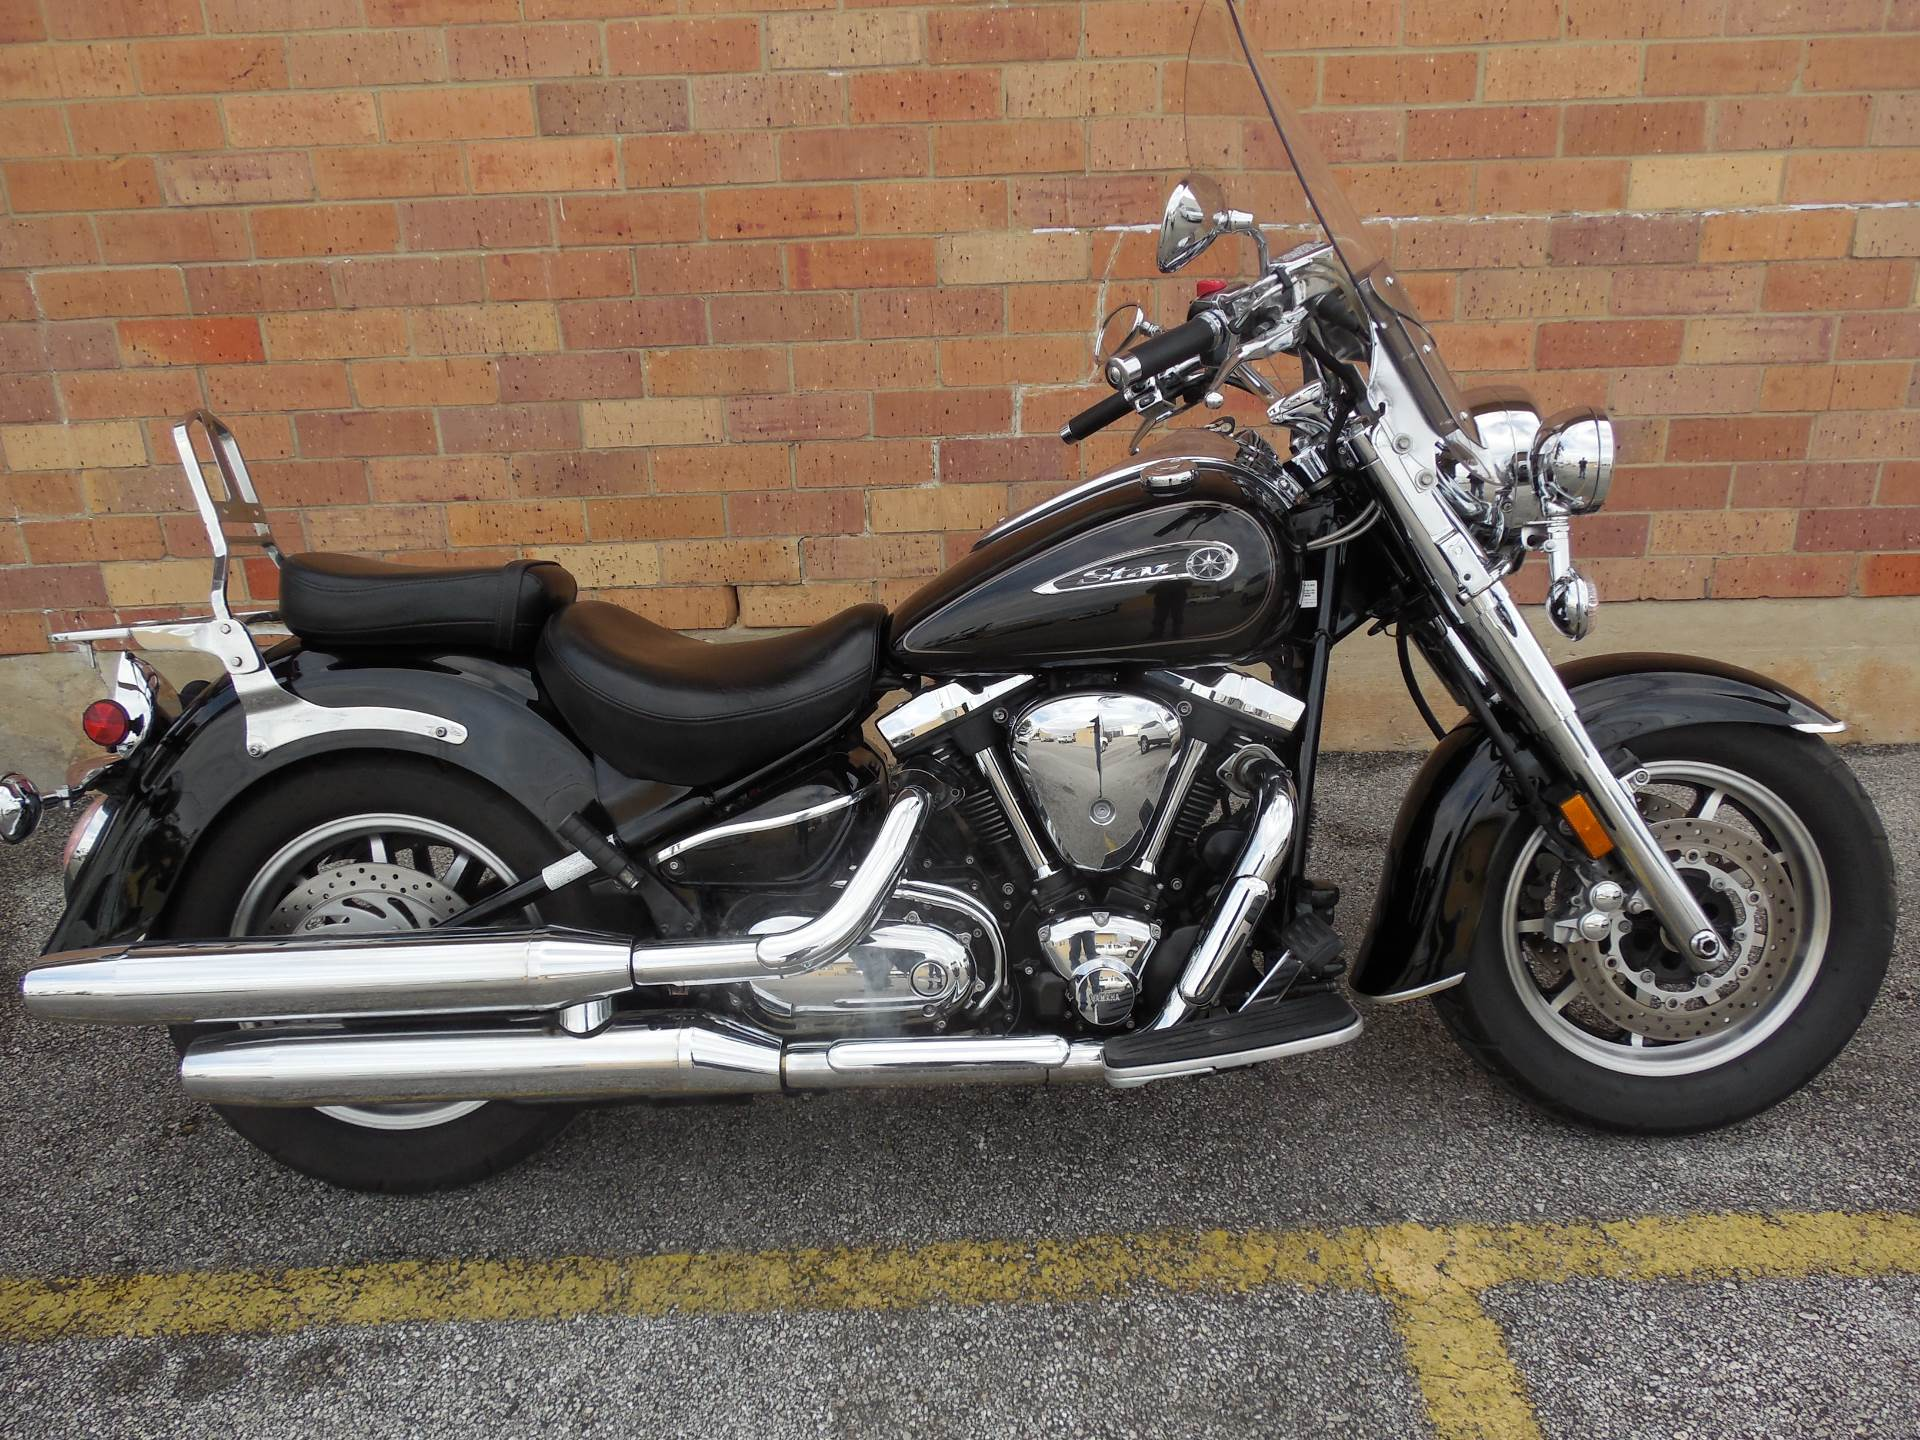 2012 Yamaha Road Star S for sale 3260